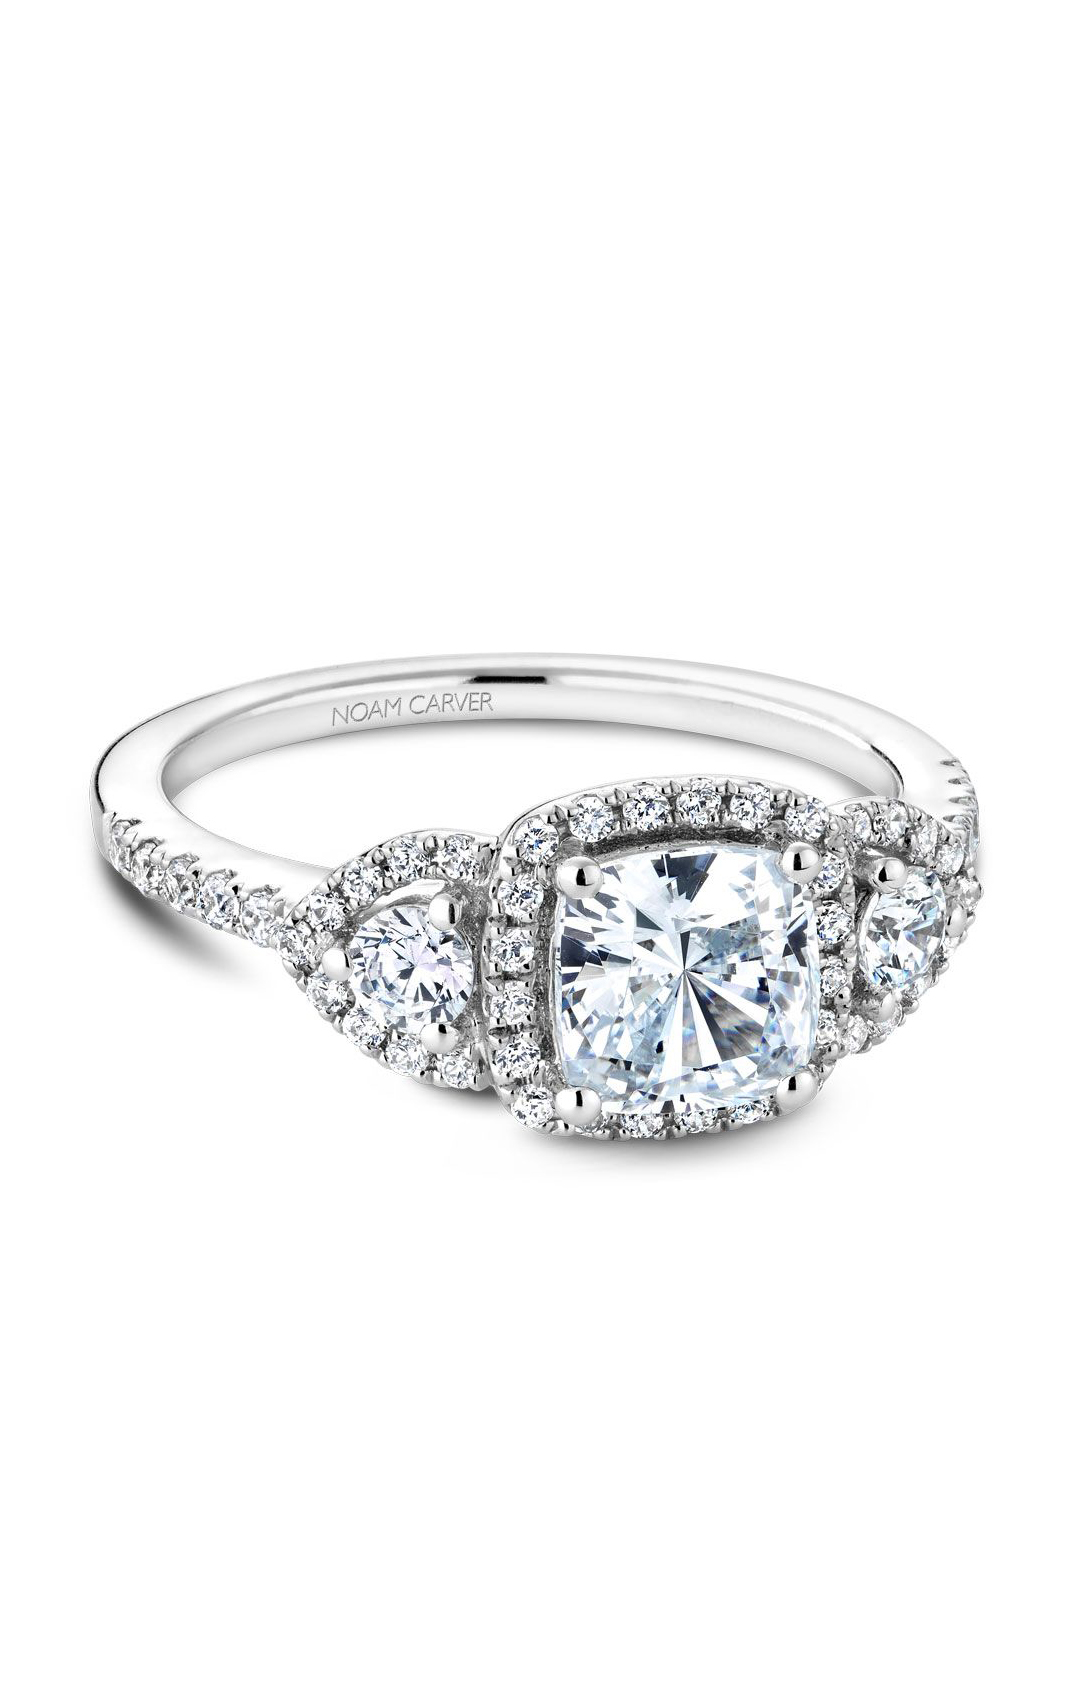 Noam Carver 3 Stone Engagement Ring B213-01A product image